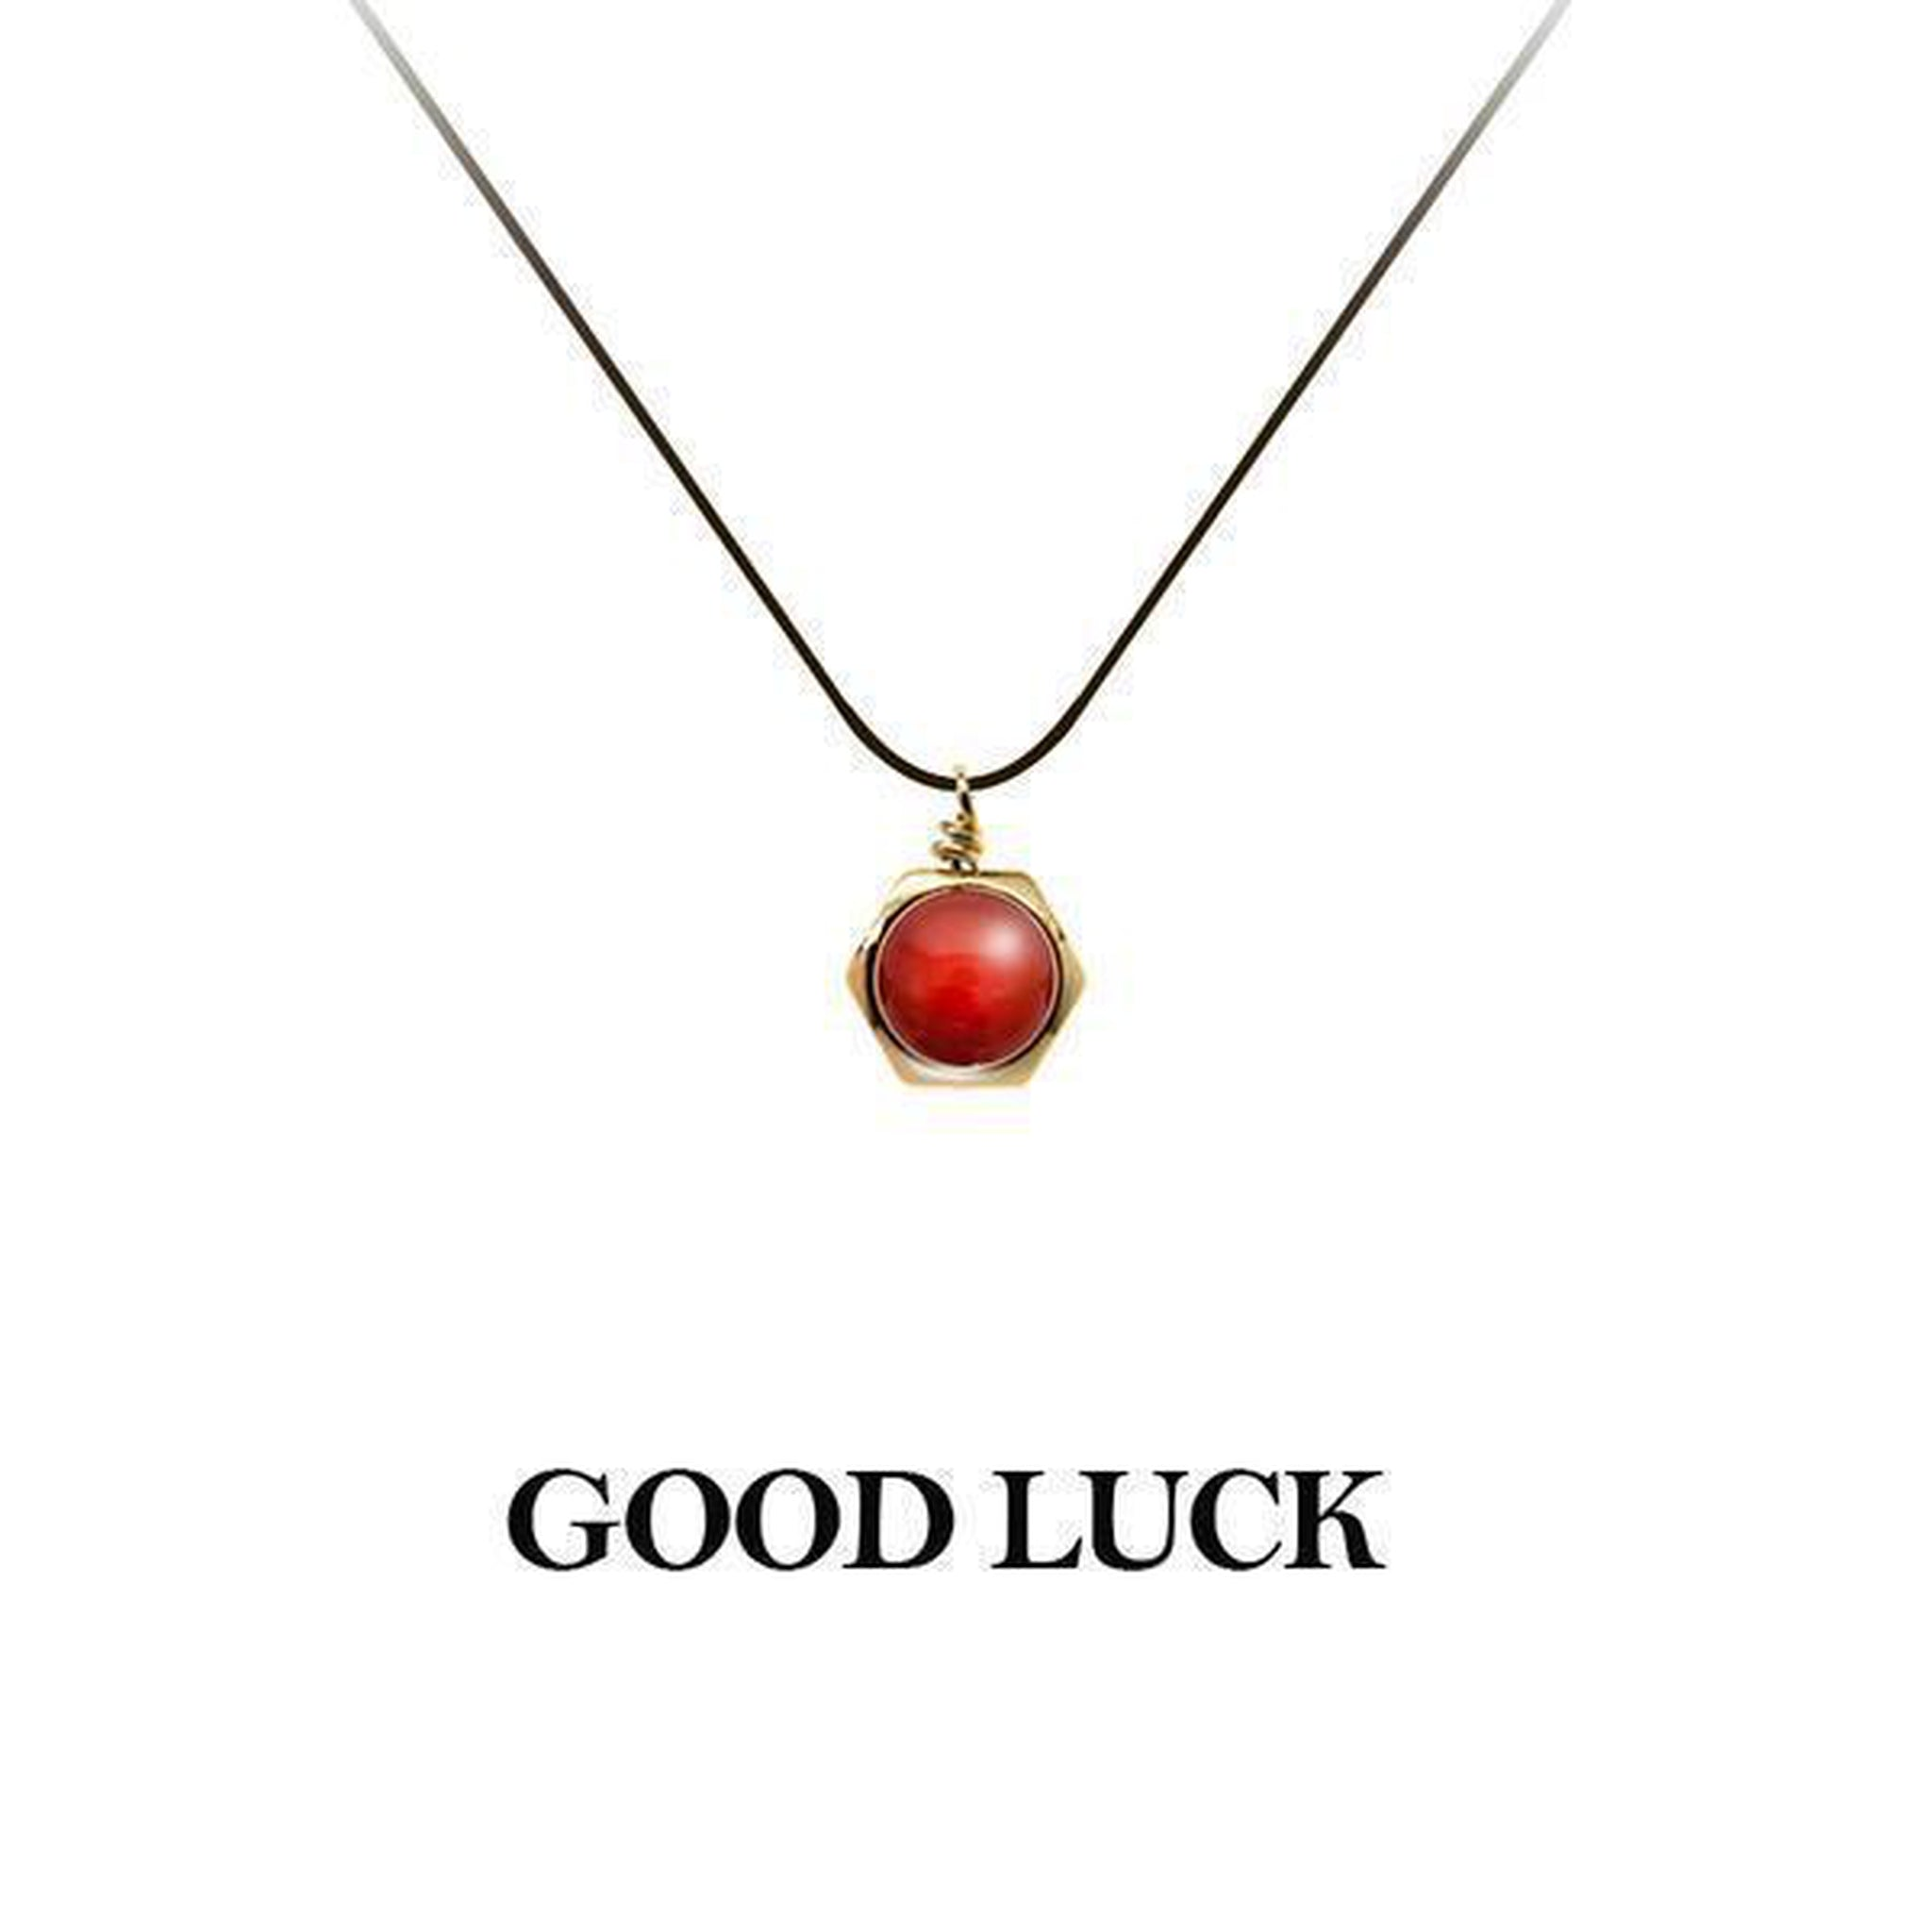 [LALA] Good Luck Necklace-LALA Necklace-La Meno